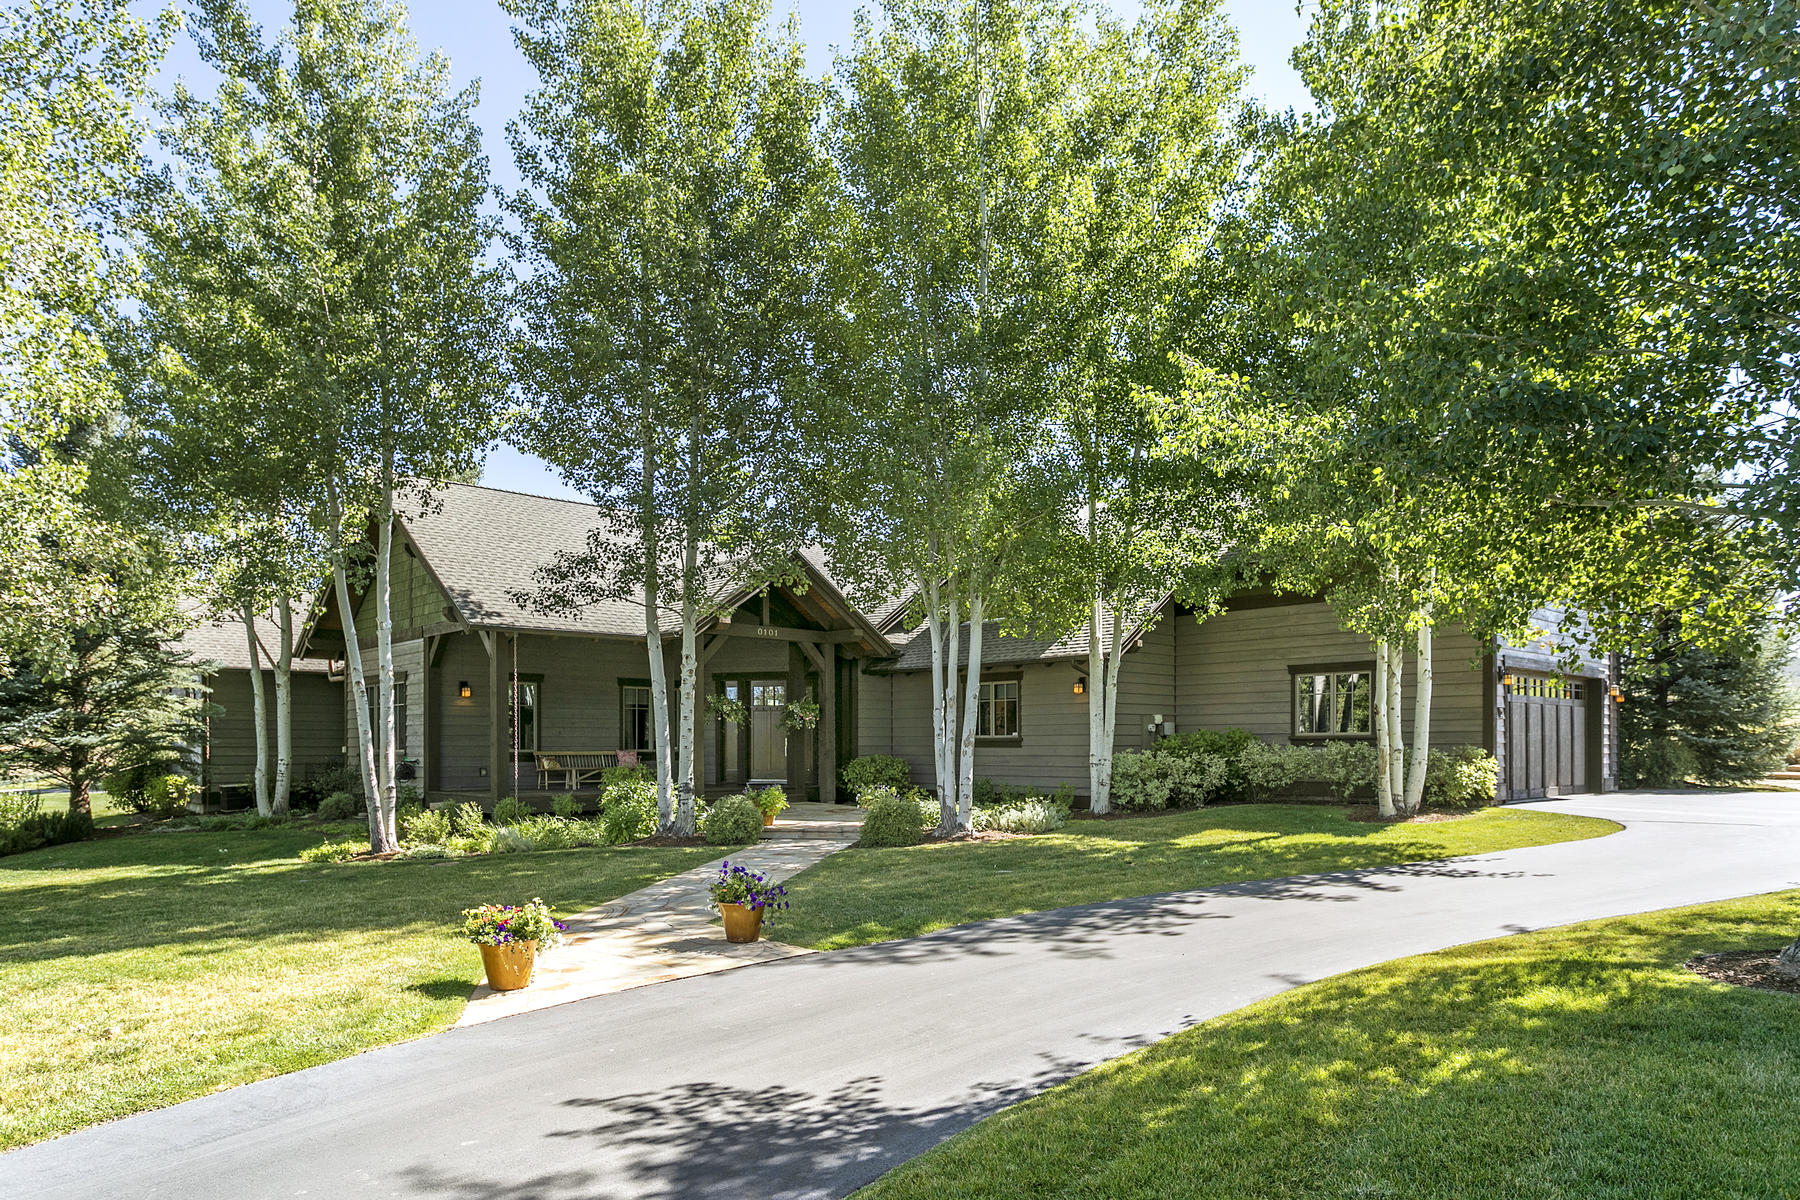 Single Family Home for Active at Private Golf Course Residence on Quiet Cul-de-Sac 101 East Foxglove Lane Eagle, Colorado 81631 United States